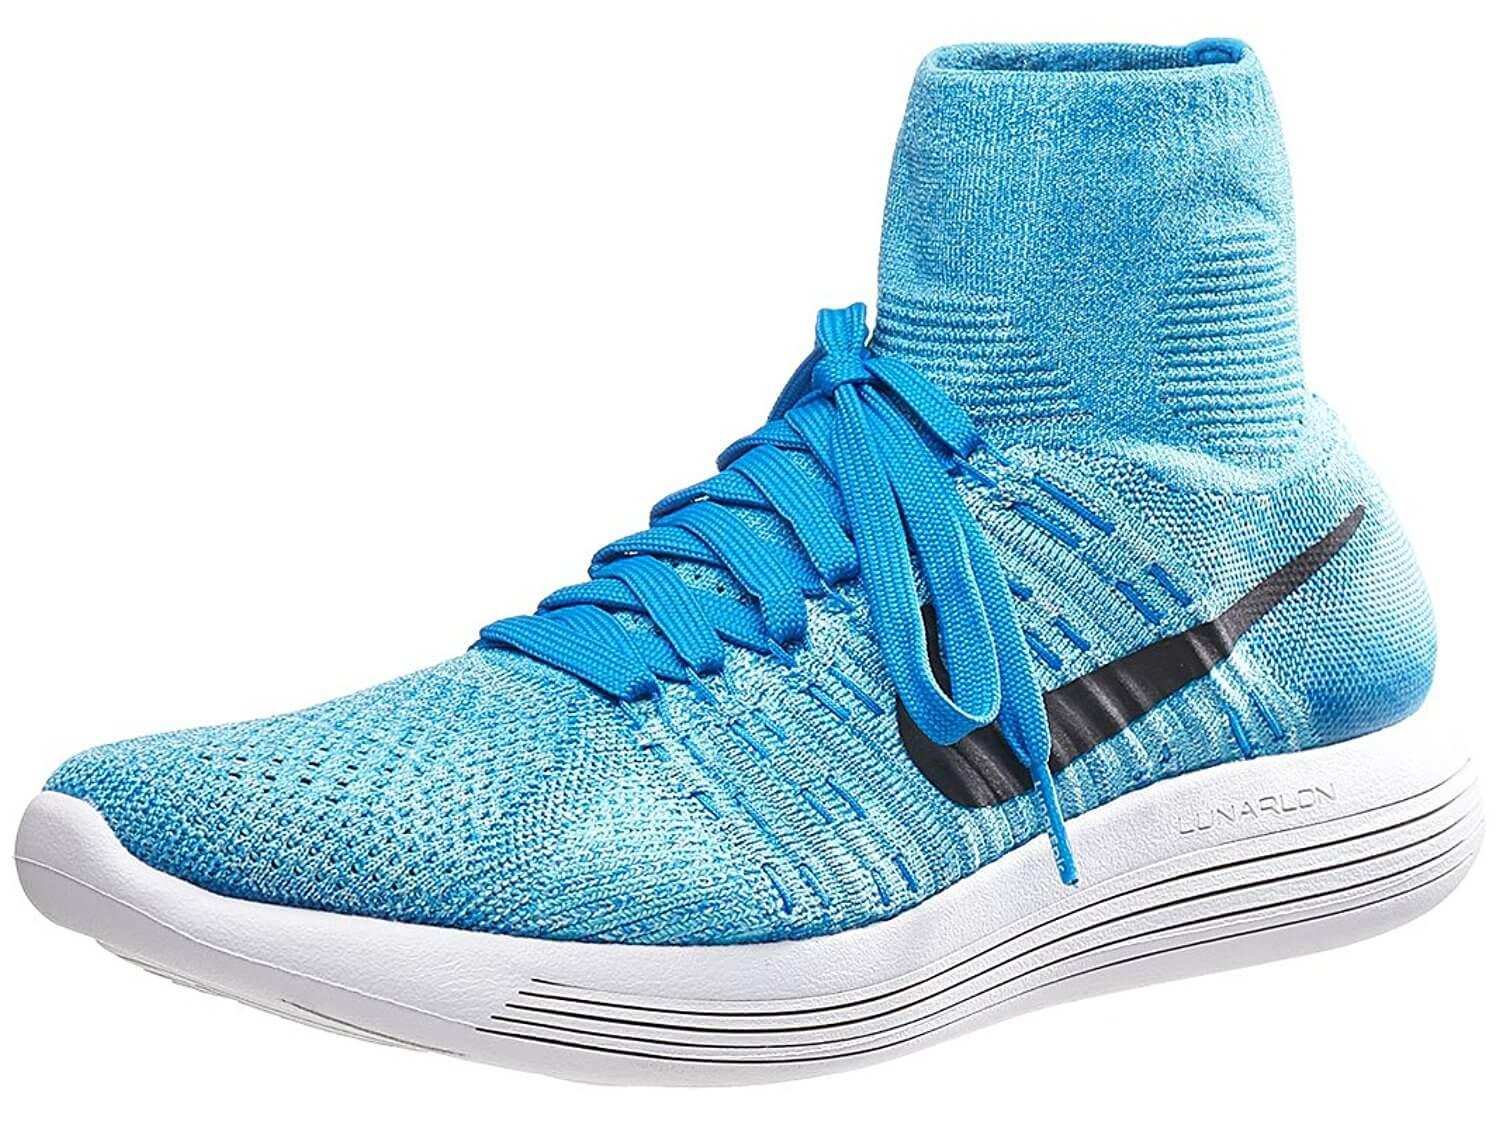 low priced a4dc2 0c53f nike lunarepic flyknit blue